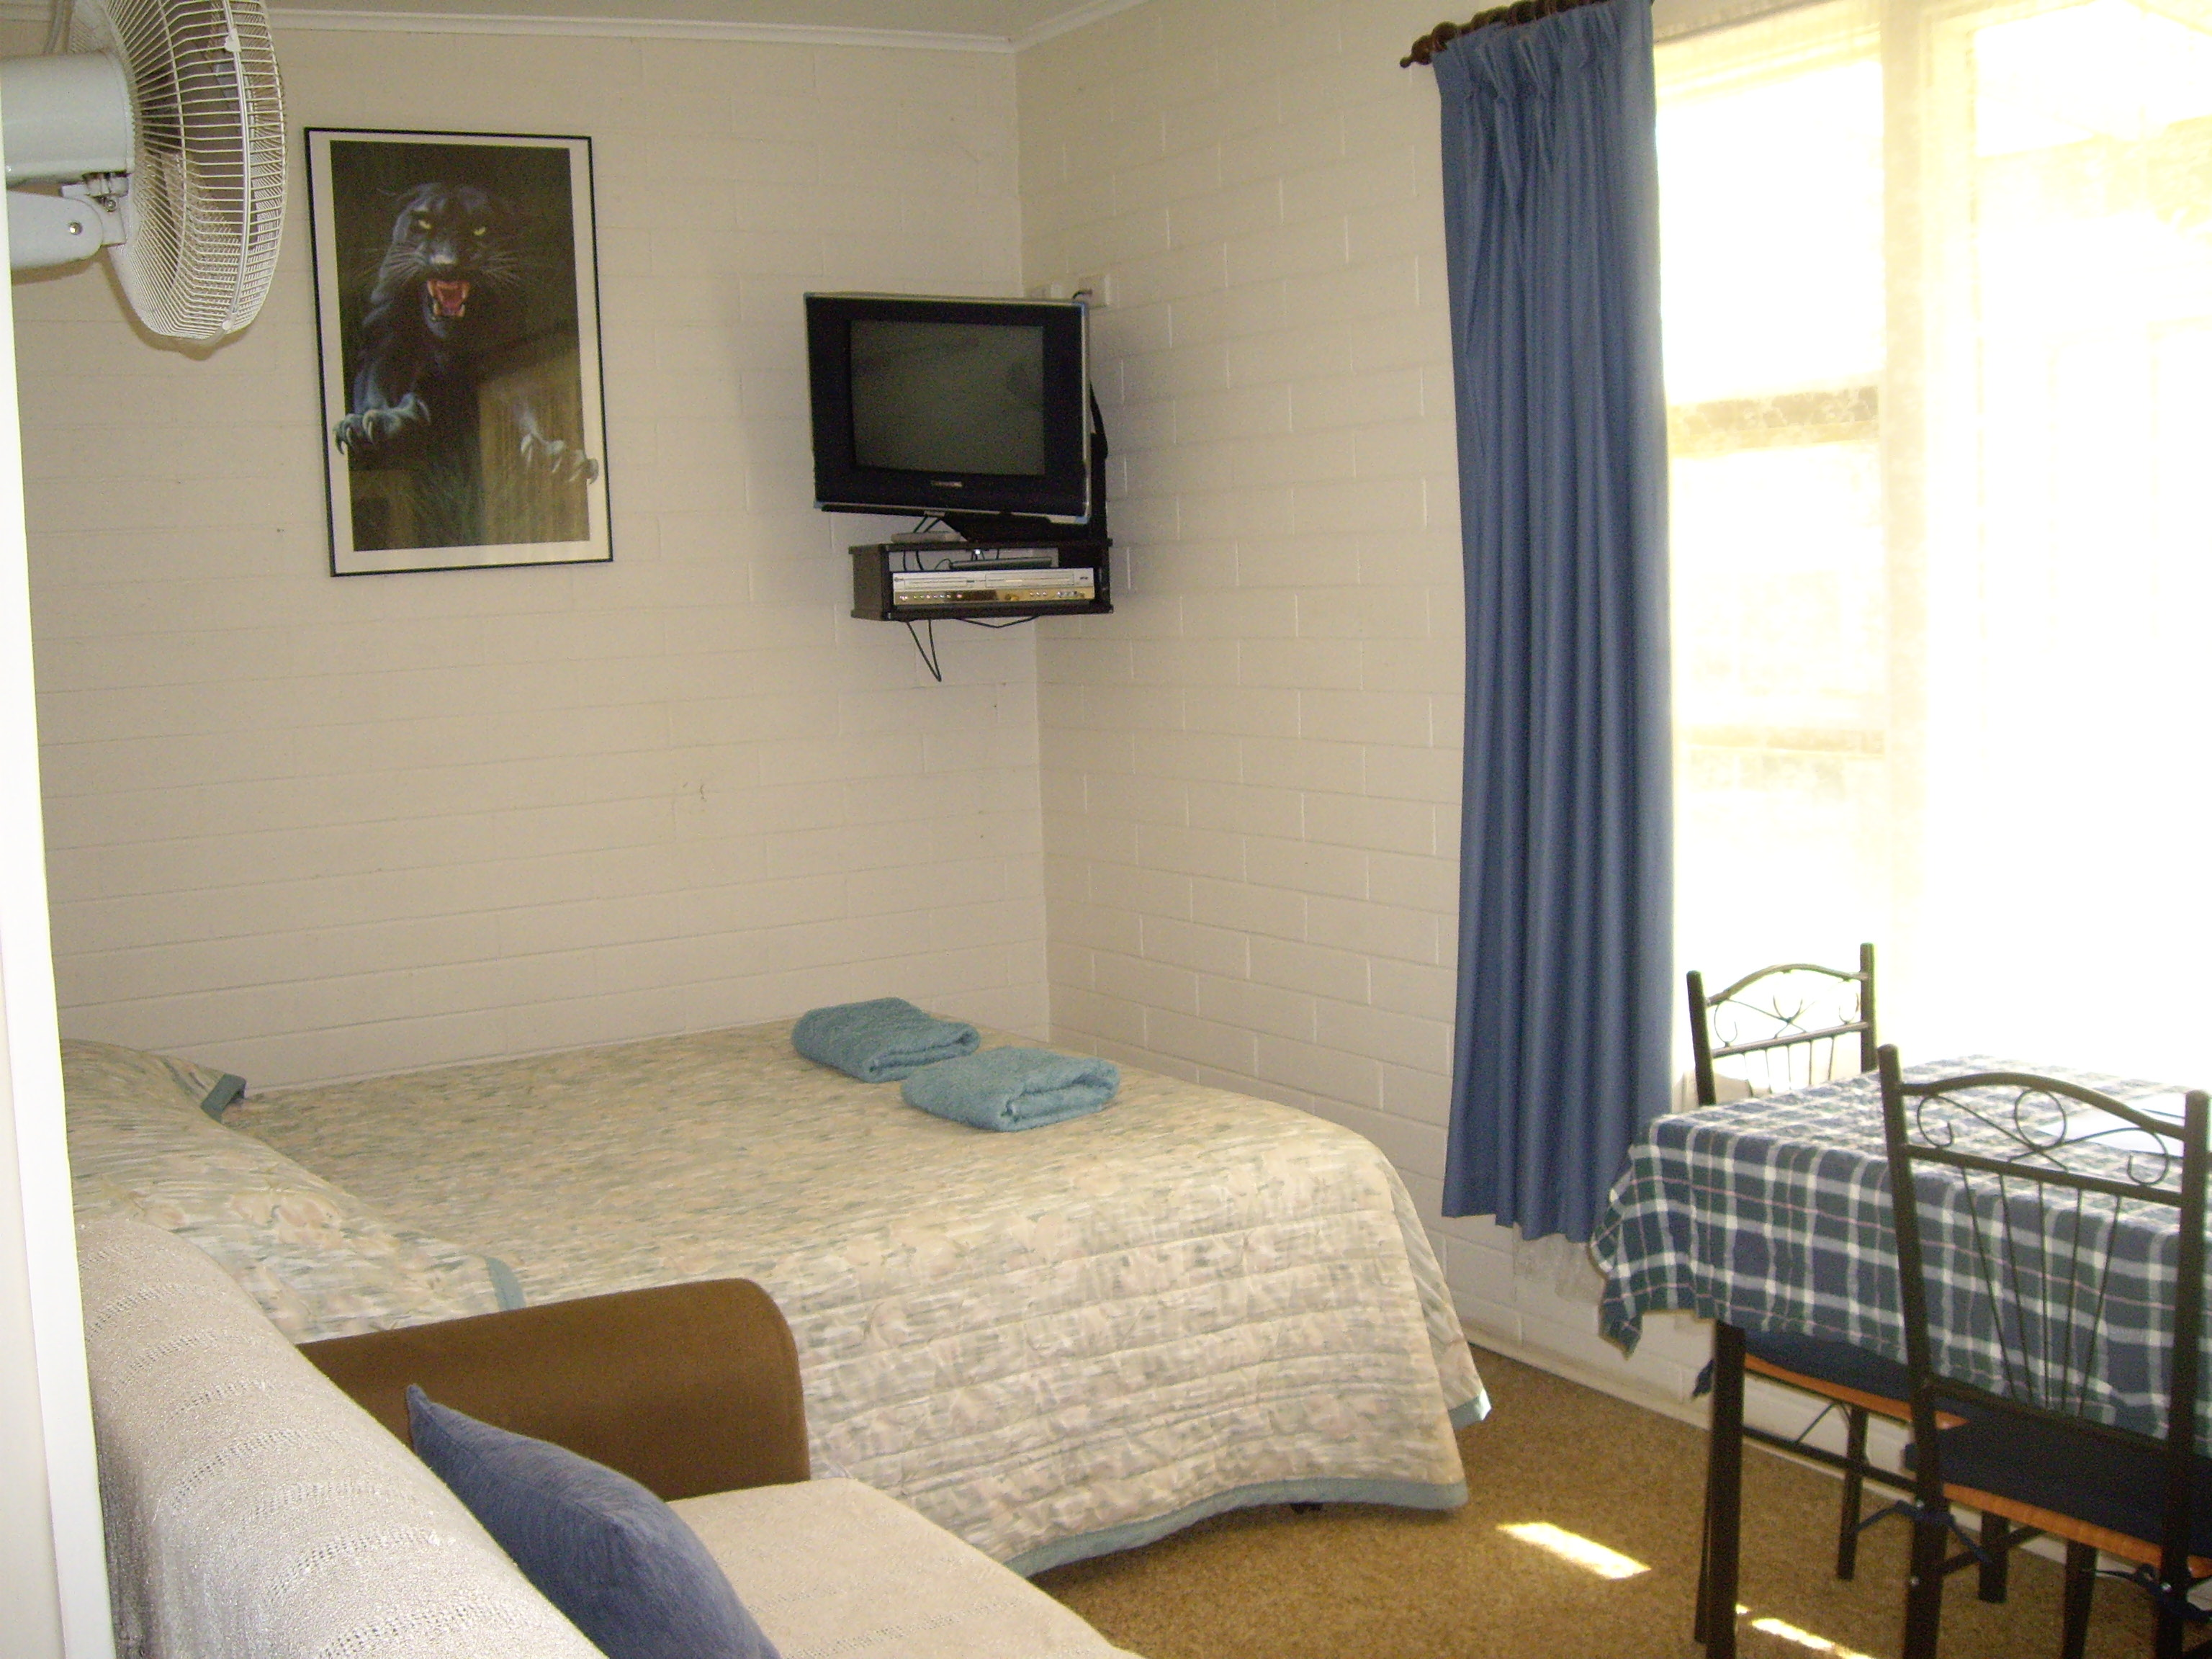 Kangaroo Island Unit - 2 people